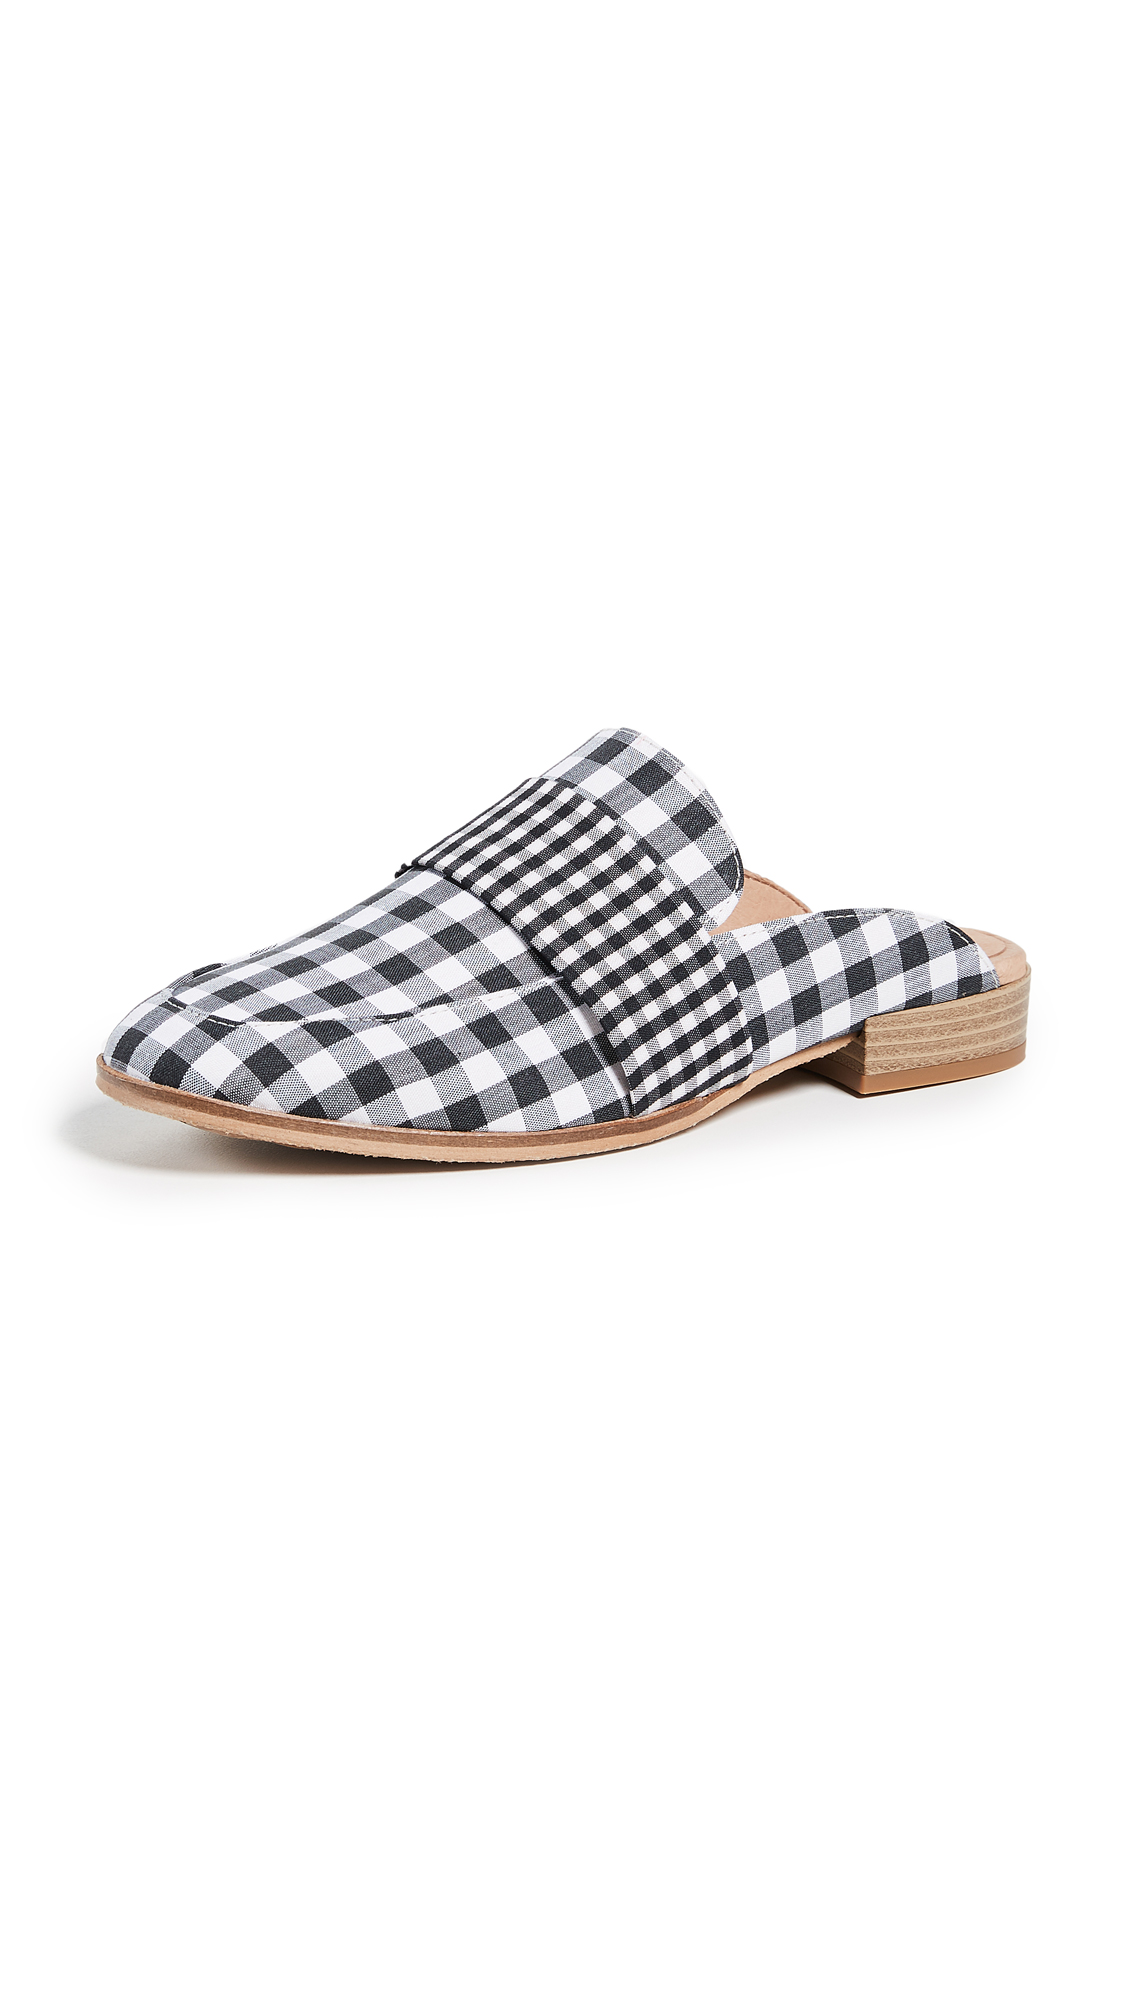 Free People At Ease Loafers - Black/White Combo